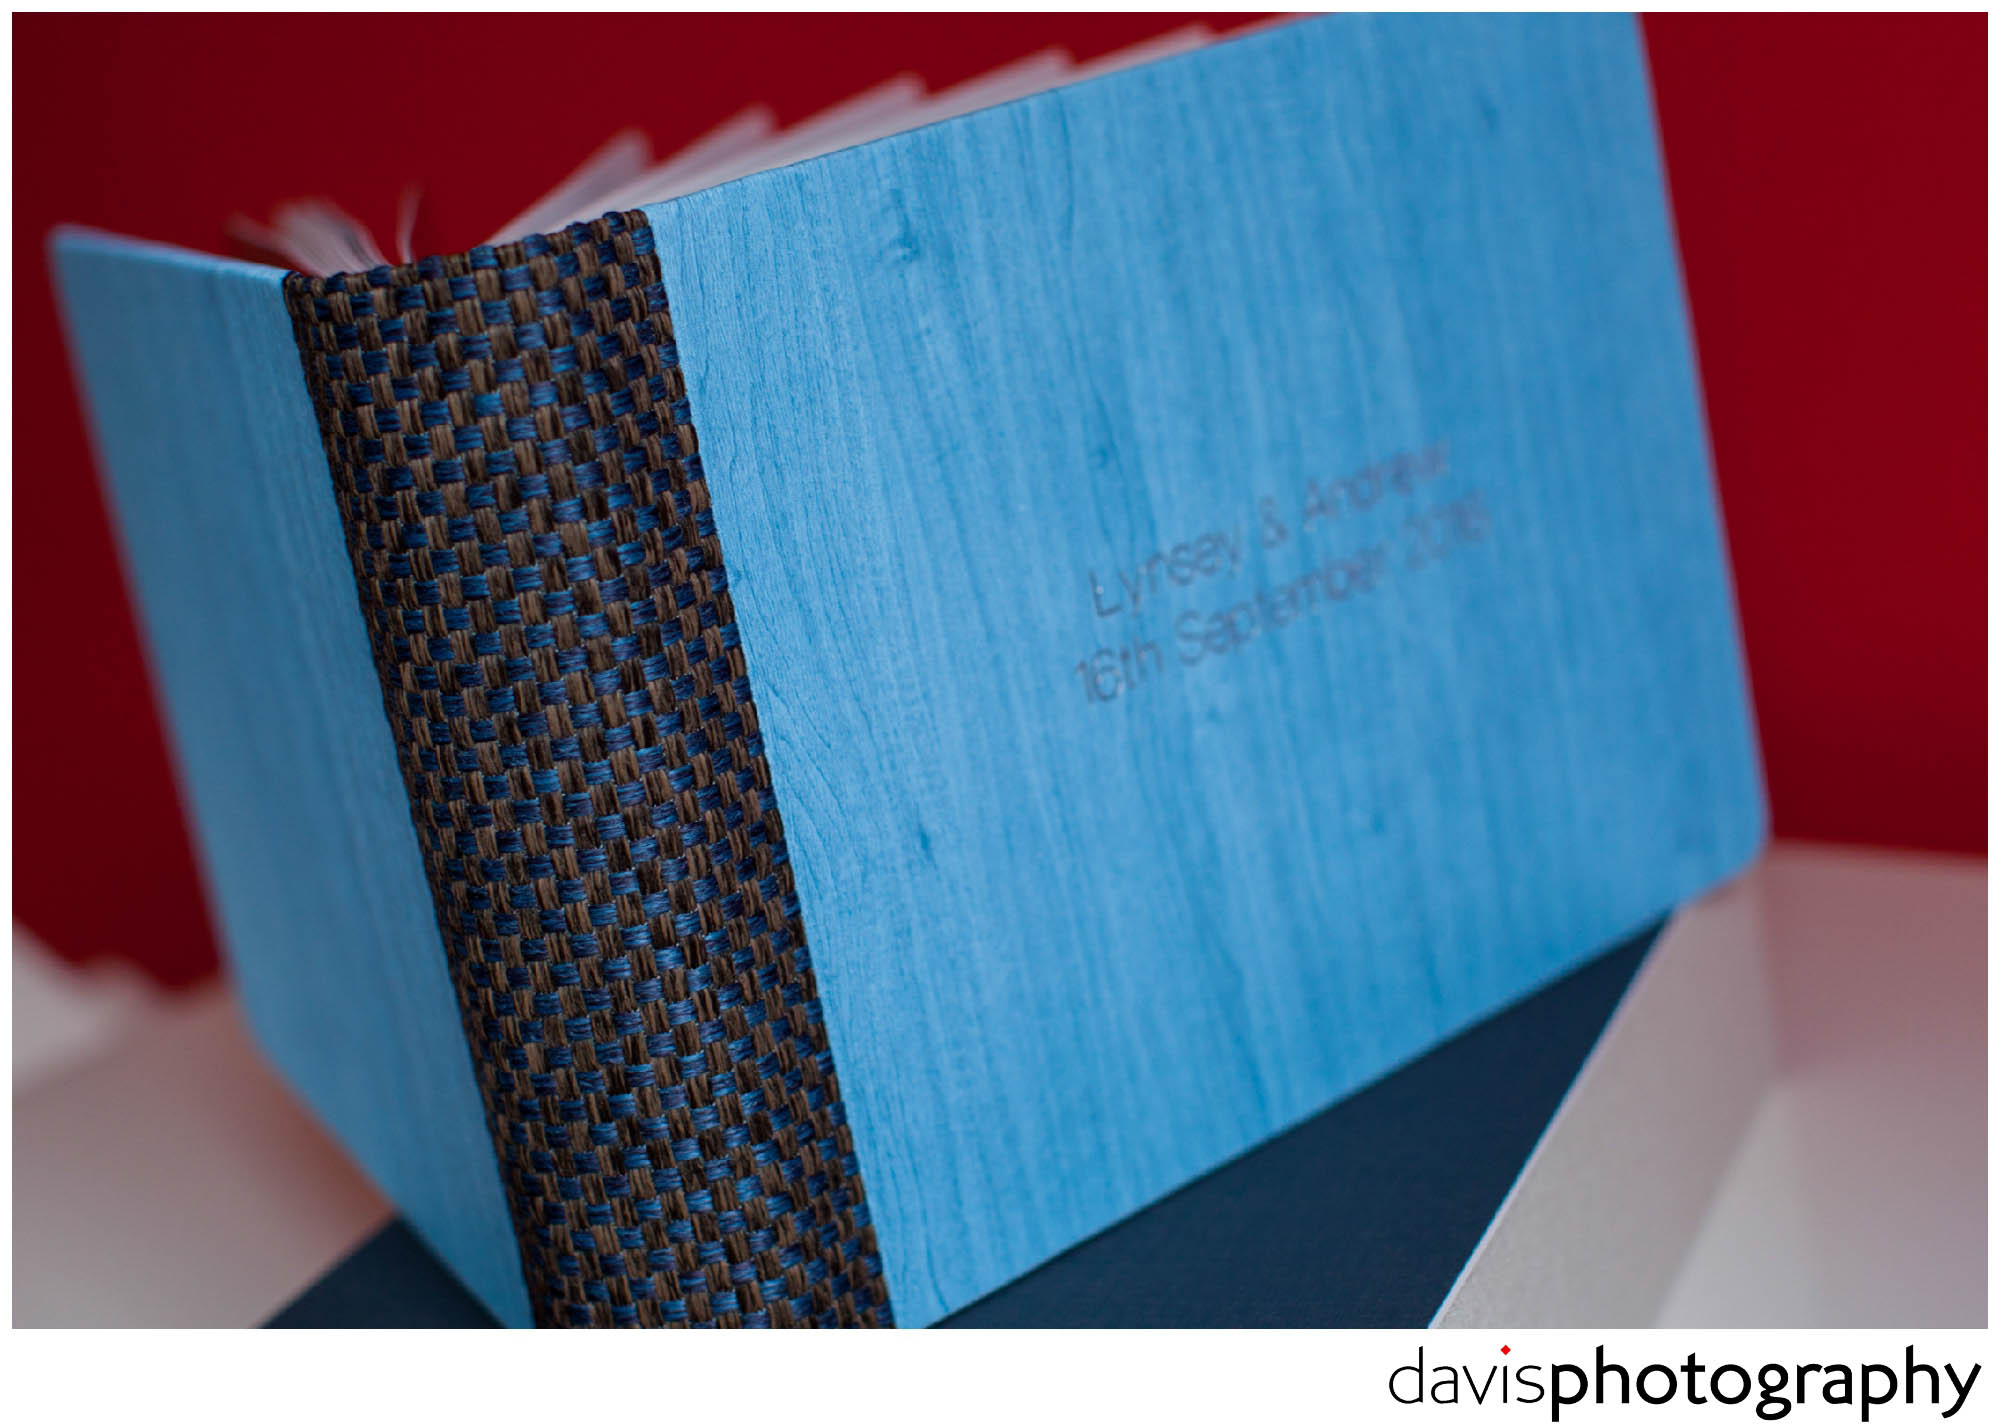 A woven spine with seamed finish allows the powder blue blue maple cover to appear front and back.